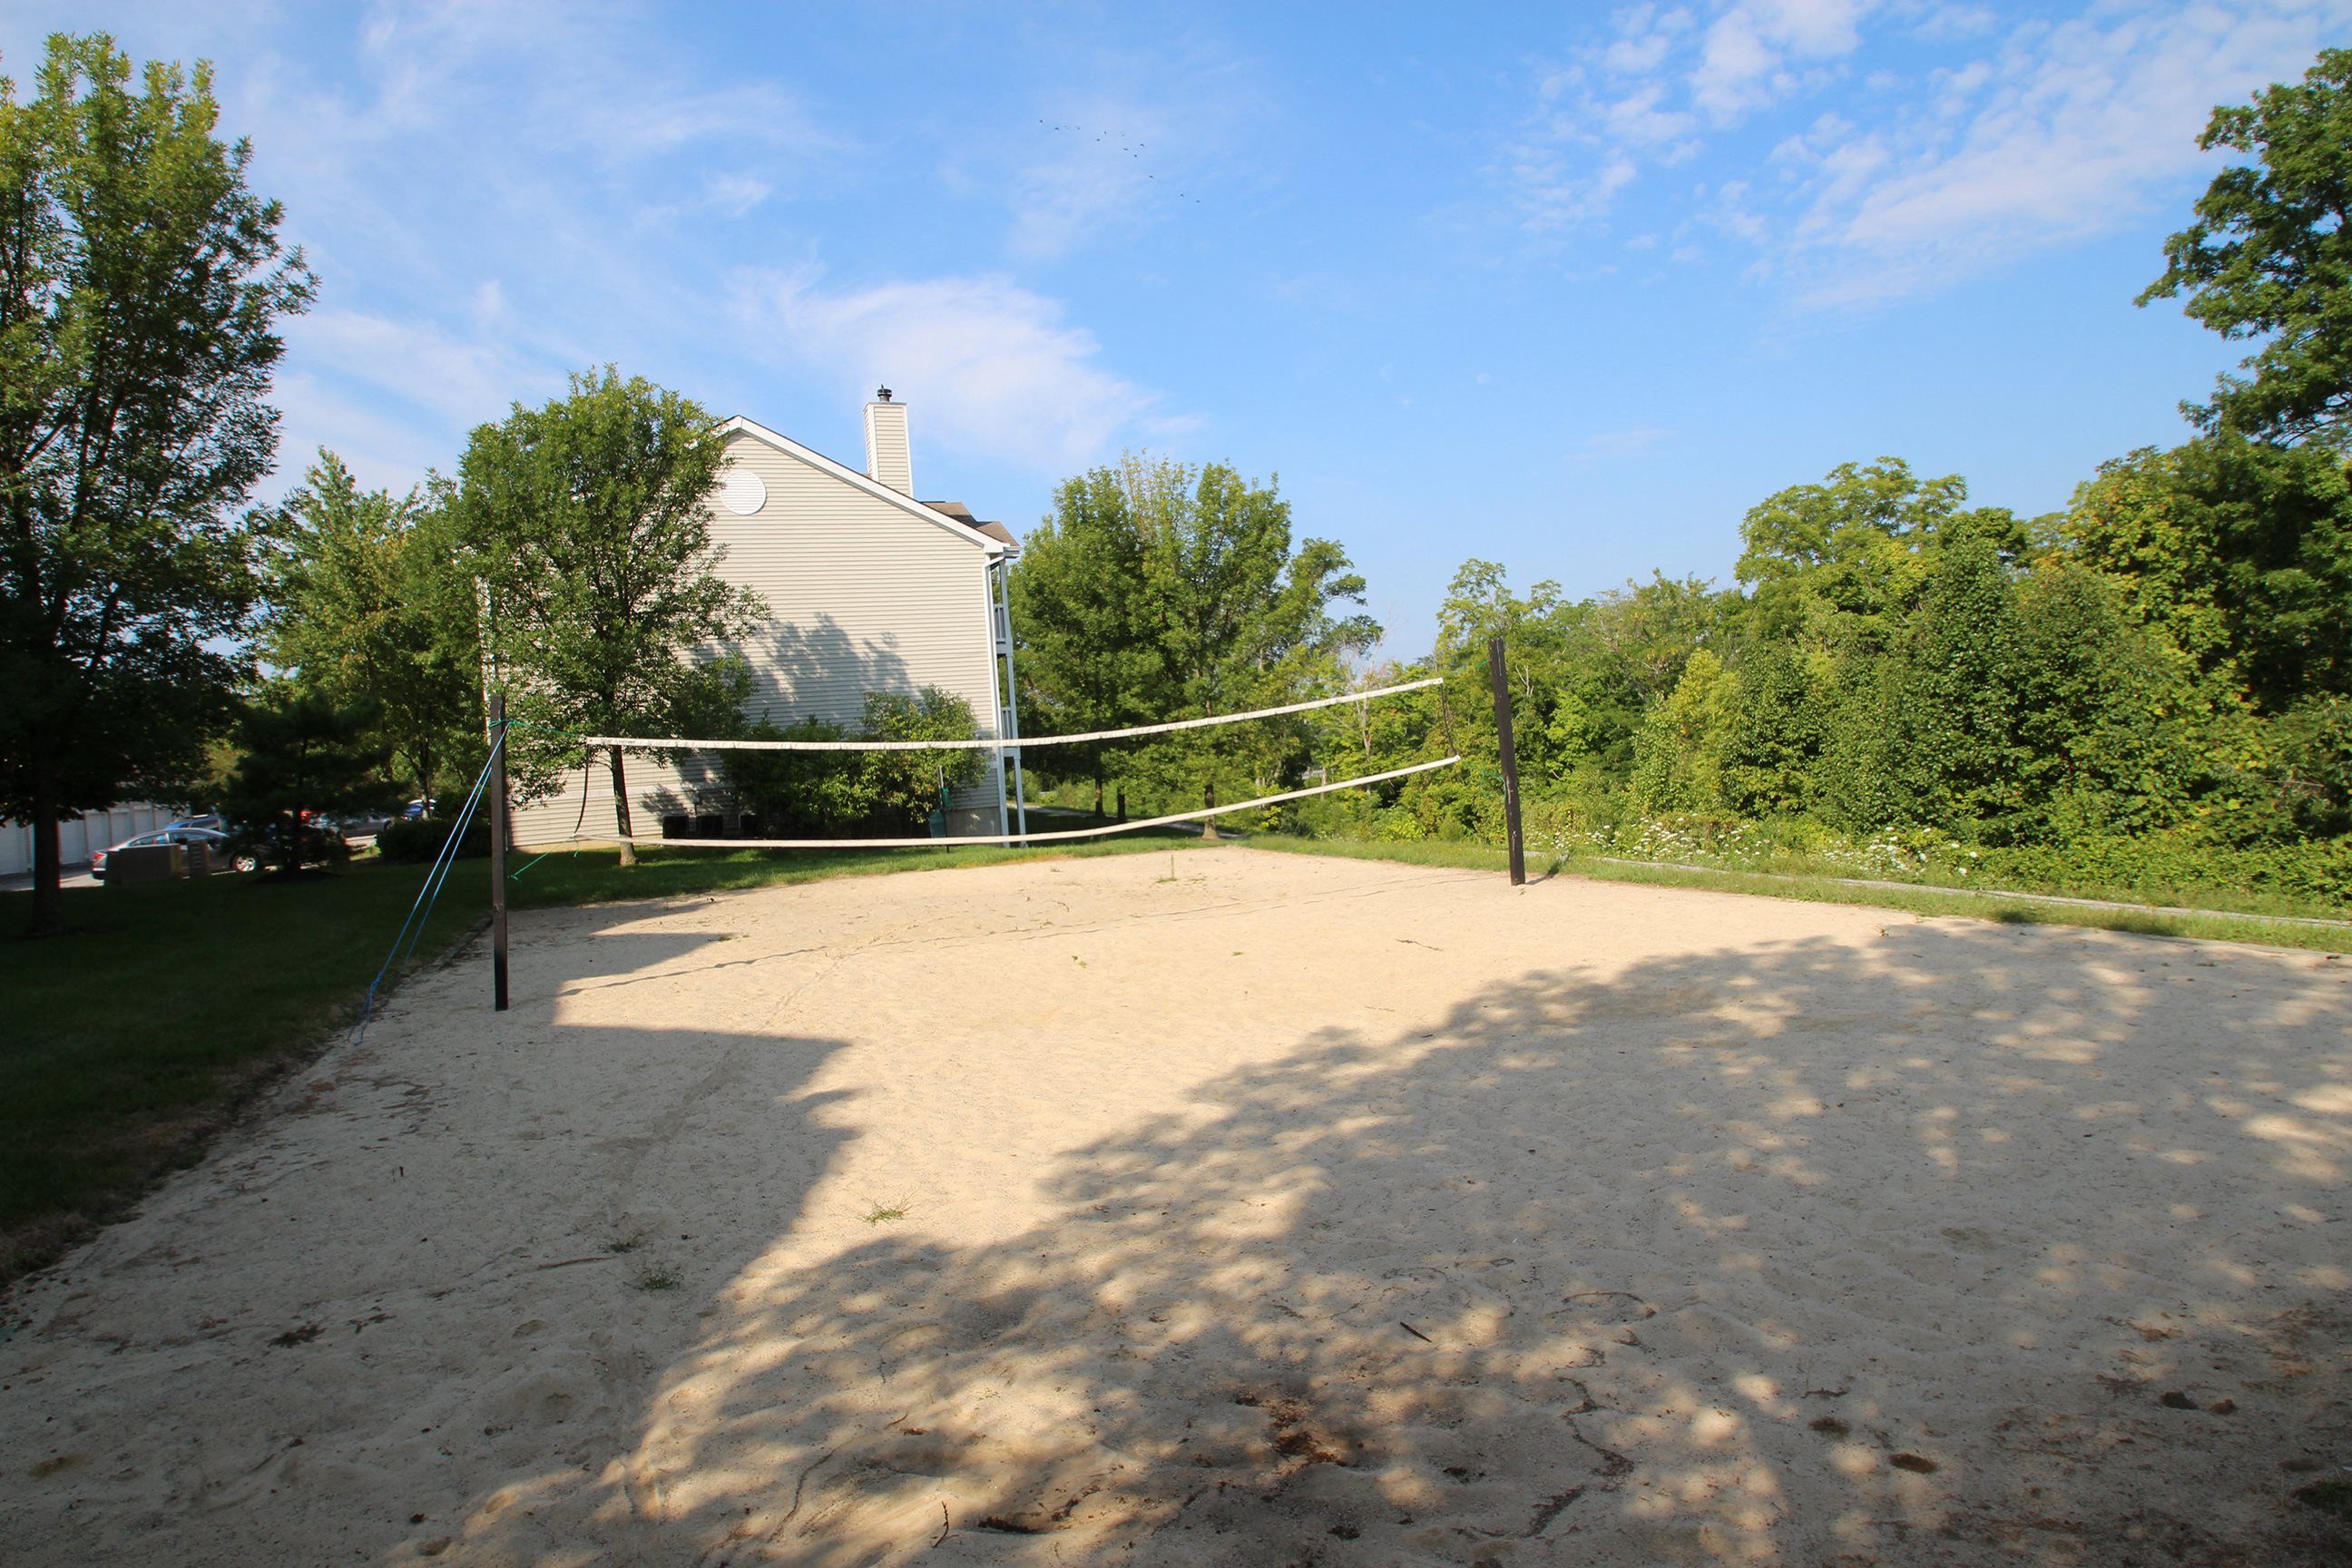 This is the sand volleyball court at Trails of Saddlebrook Apartments in Florence, KY